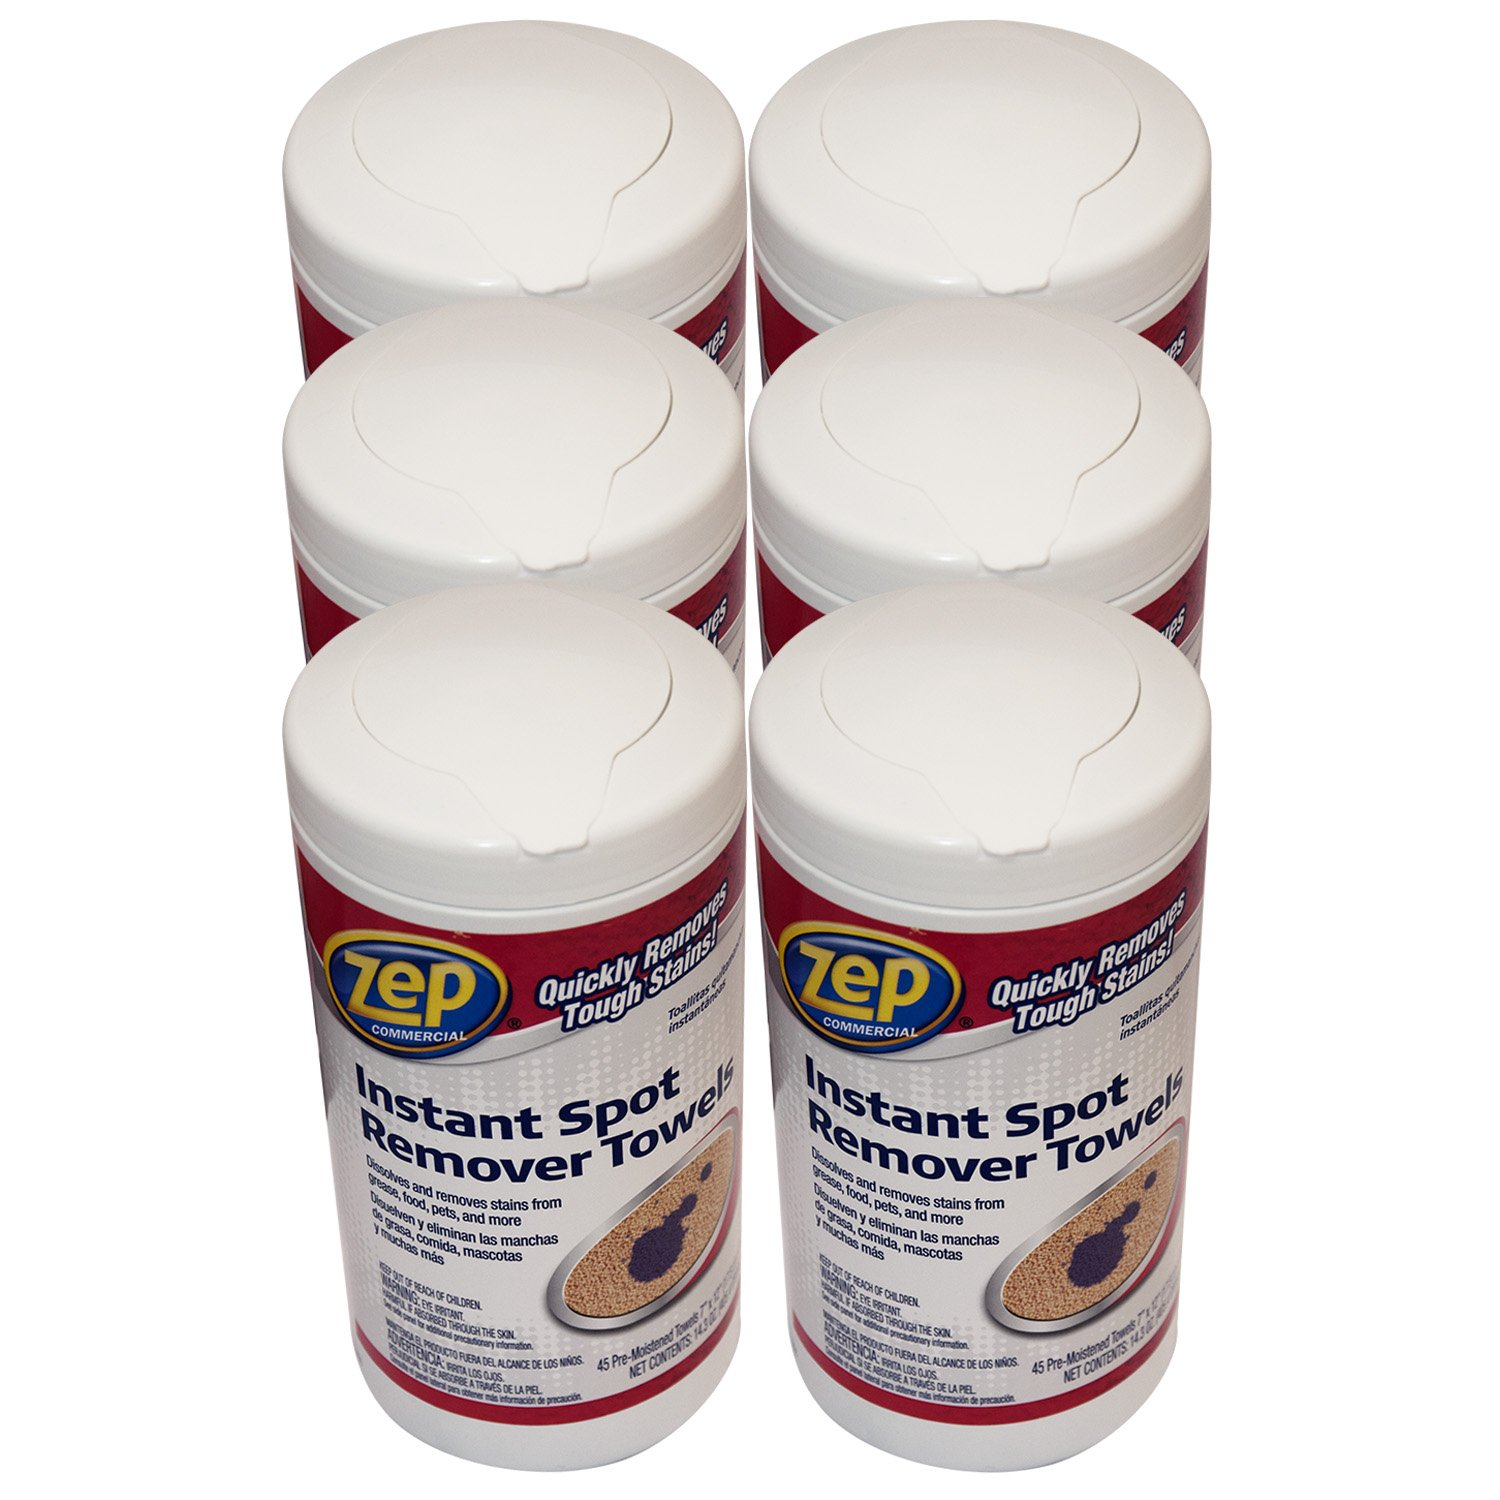 Amazon.com: Zep Instant Spot Remover Towels 45-ct (case of 6): Kitchen & Dining